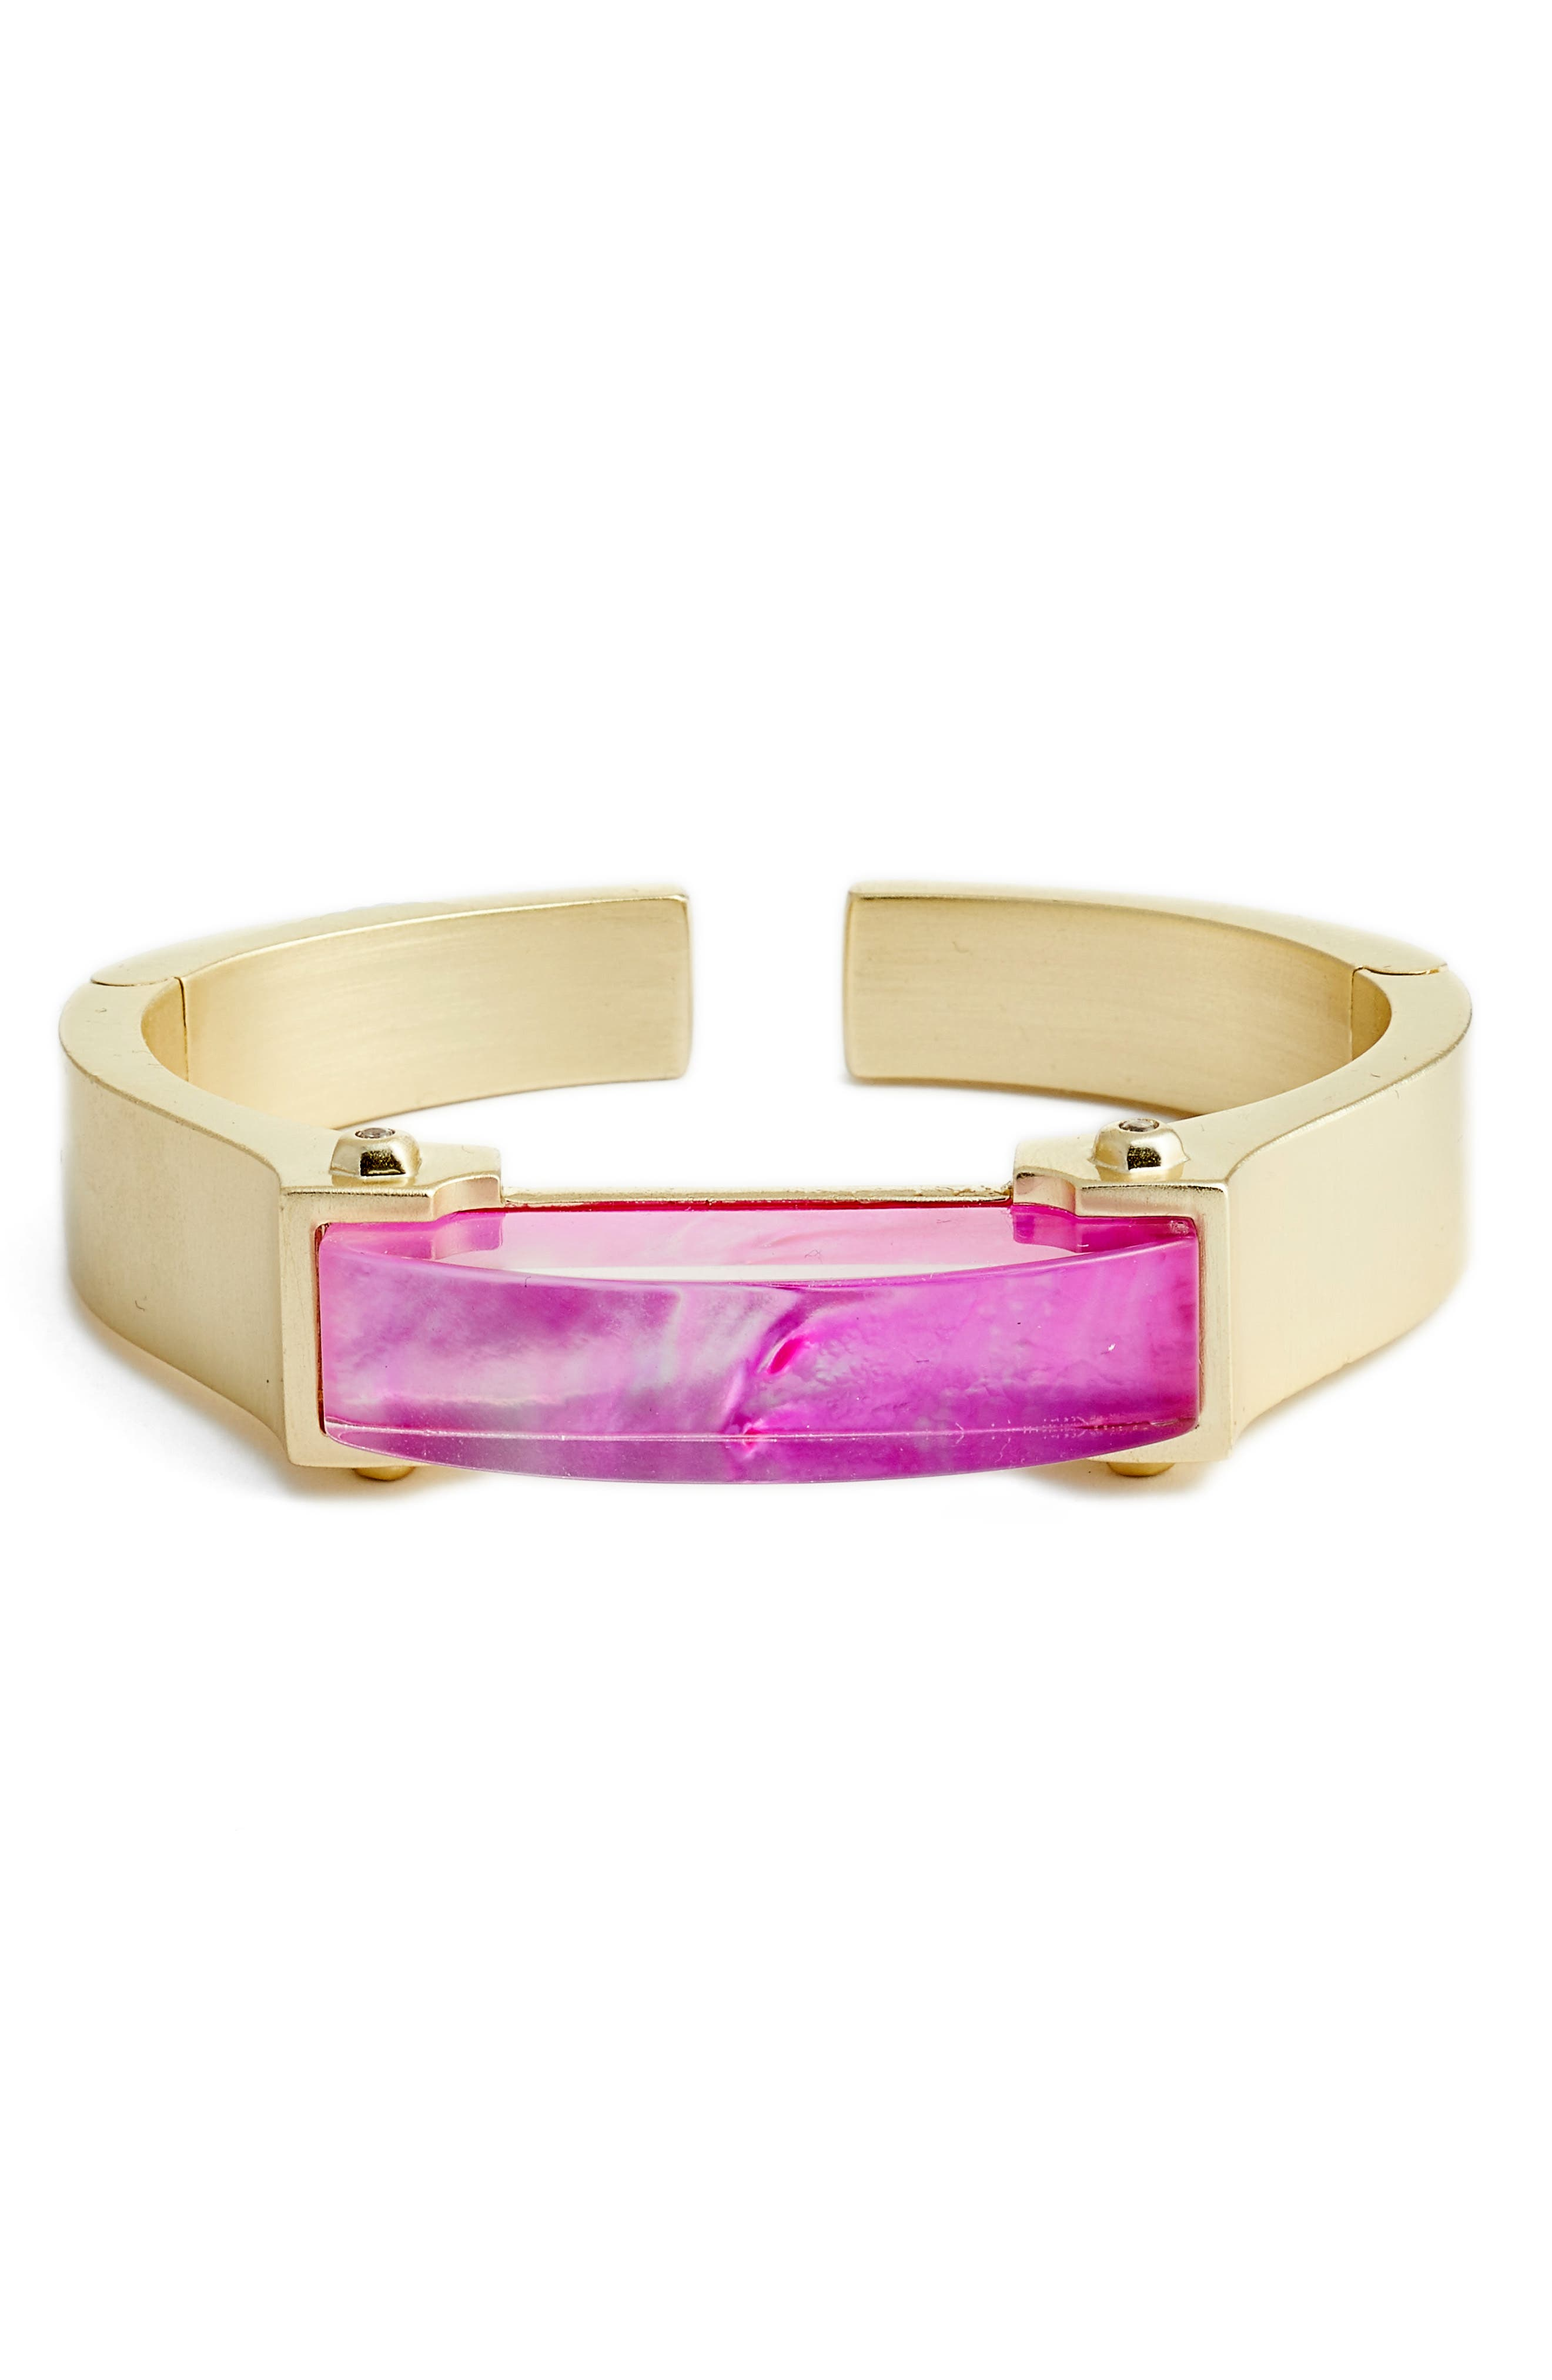 Kailey Cuff Bracelet,                         Main,                         color, Magenta Mop/ Gold